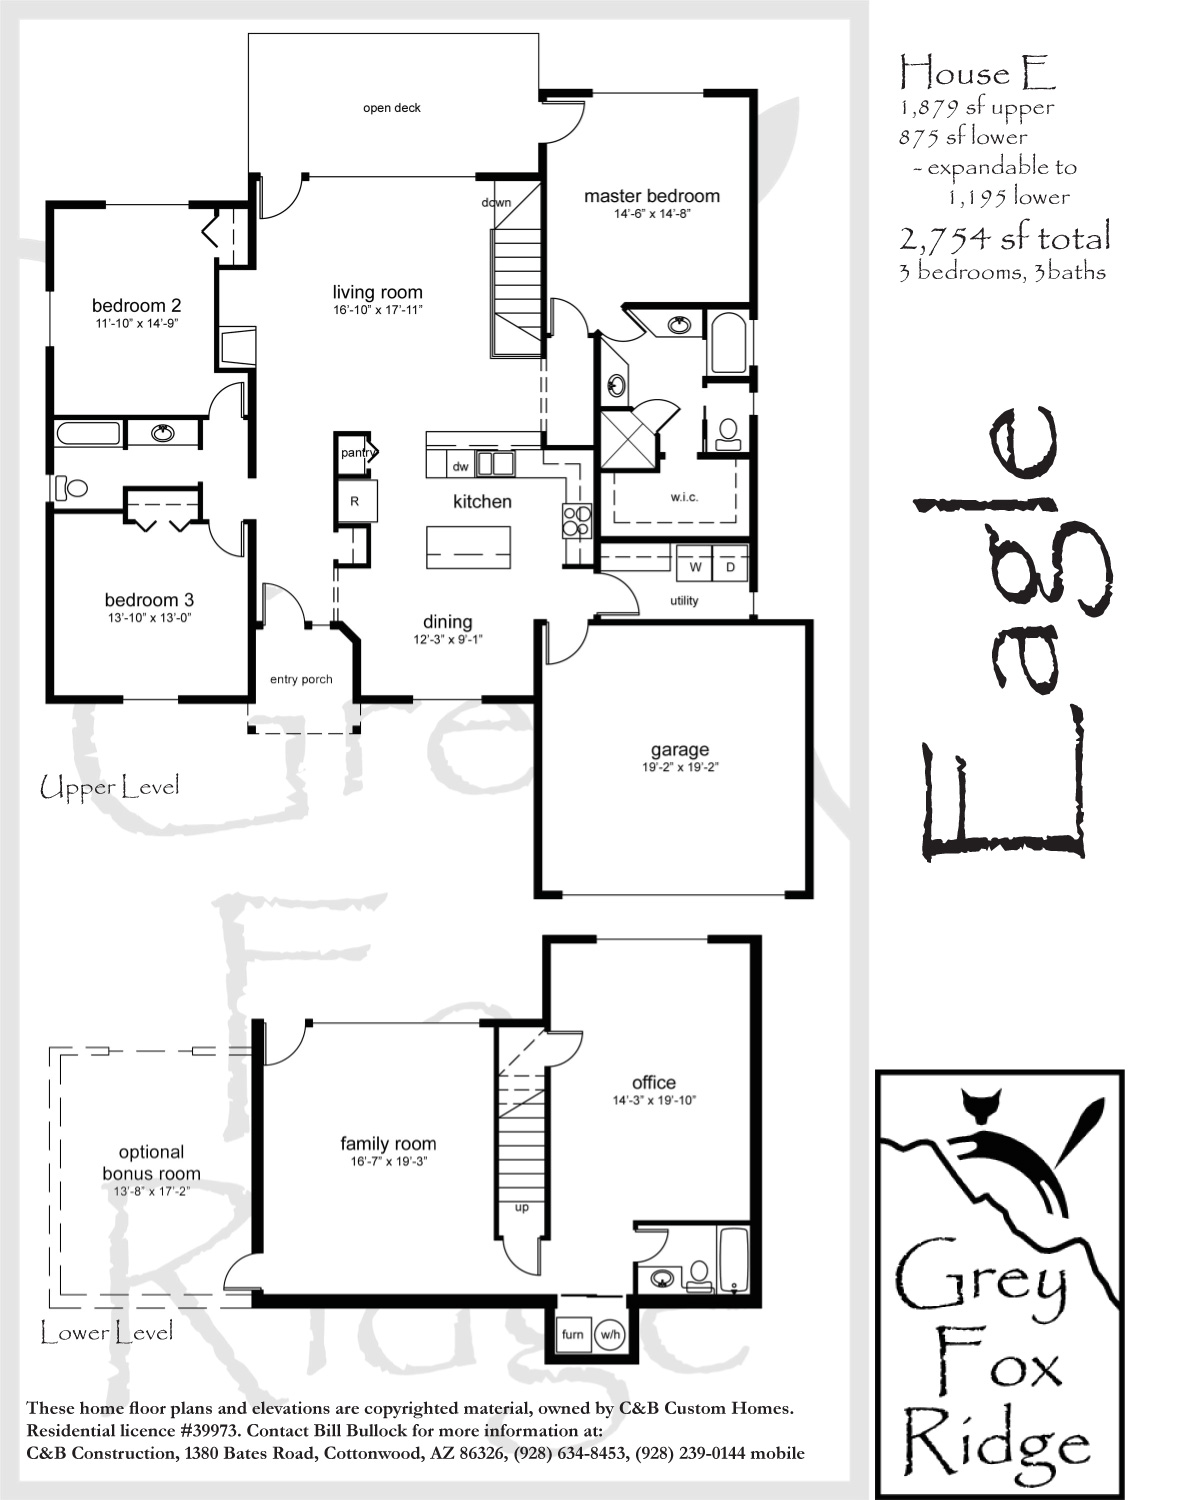 Eagle_floorplan